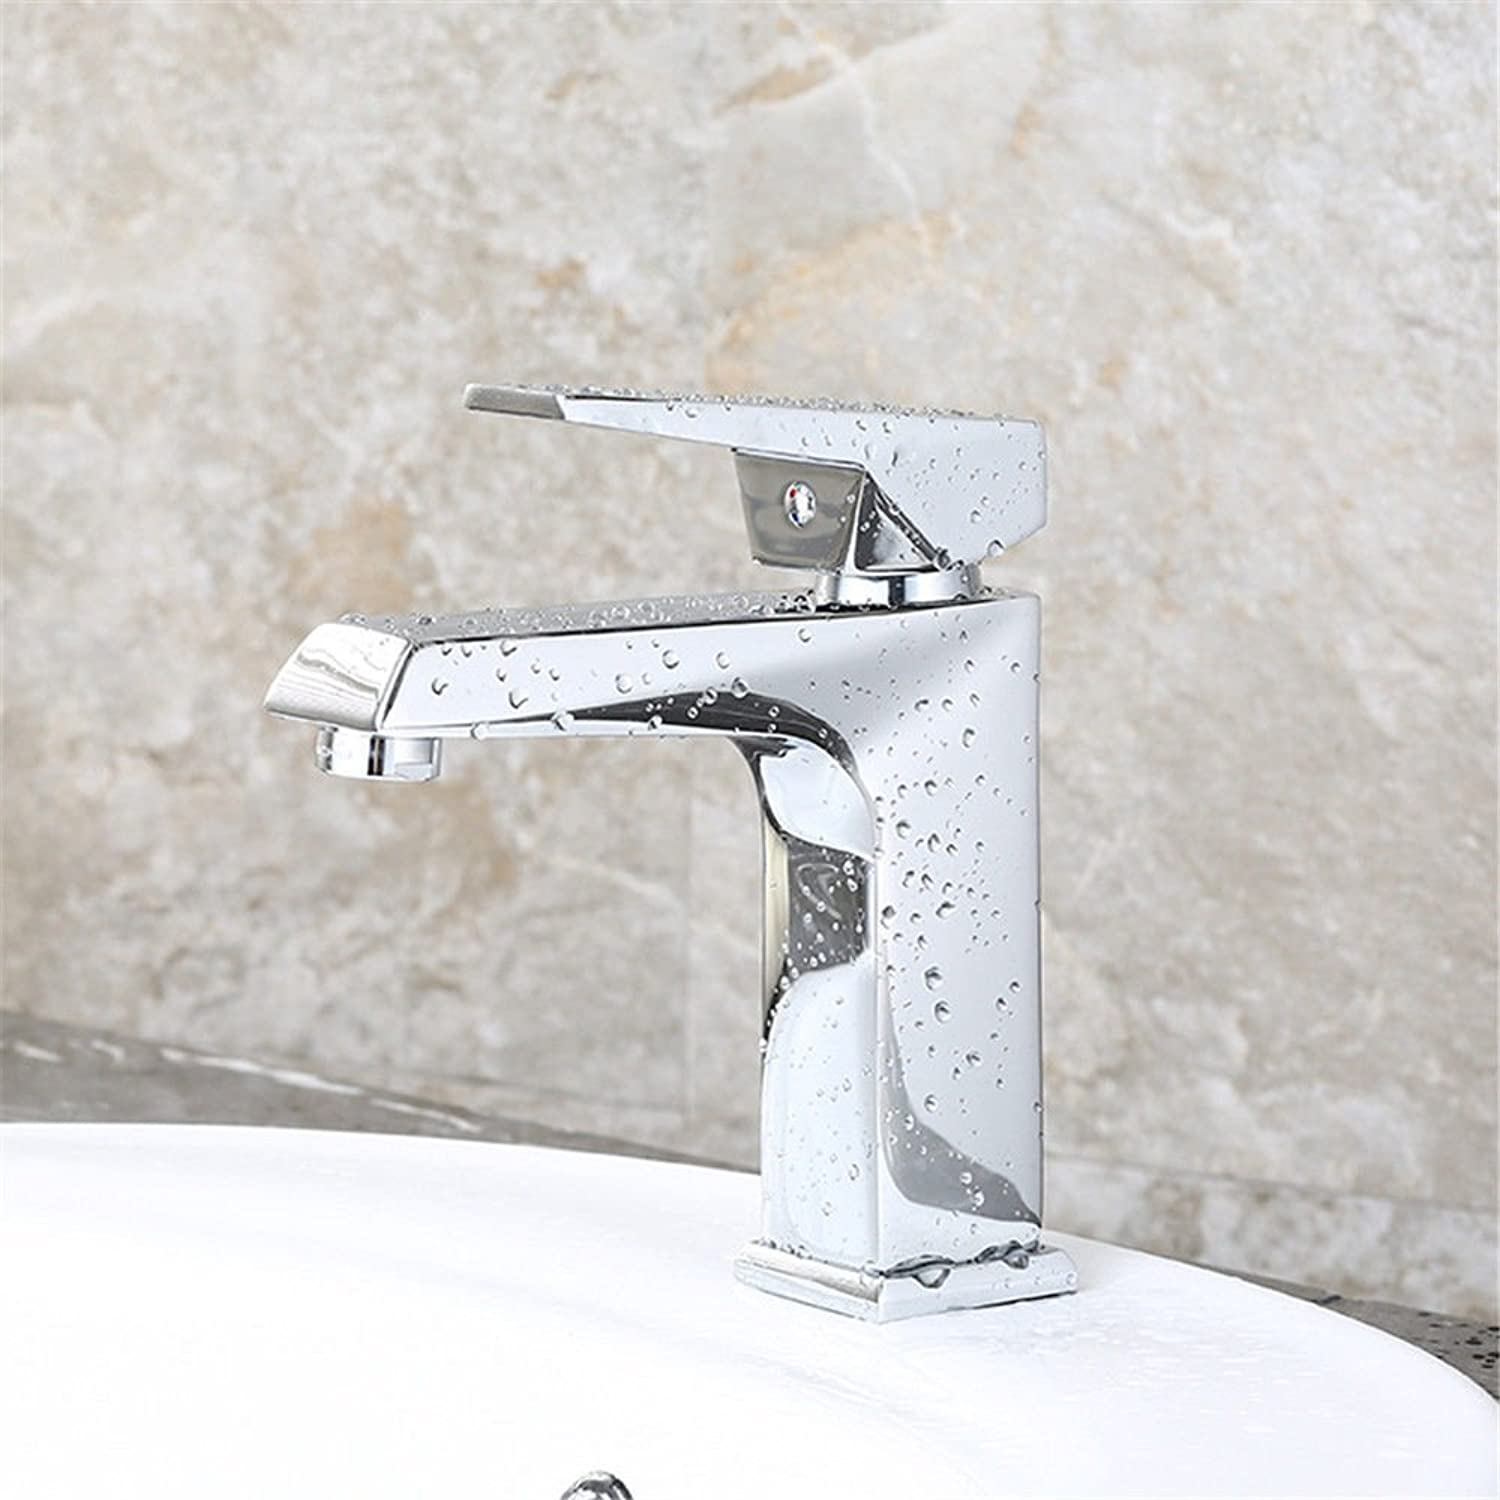 HUAIX home Sink Mixer Tap Bathroom Kitchen Basin Tap Leakproof Save Water Chrome Waterfall Water Outlet Cold Water Ceramic Valve Two Hole Single Handle Bathroom